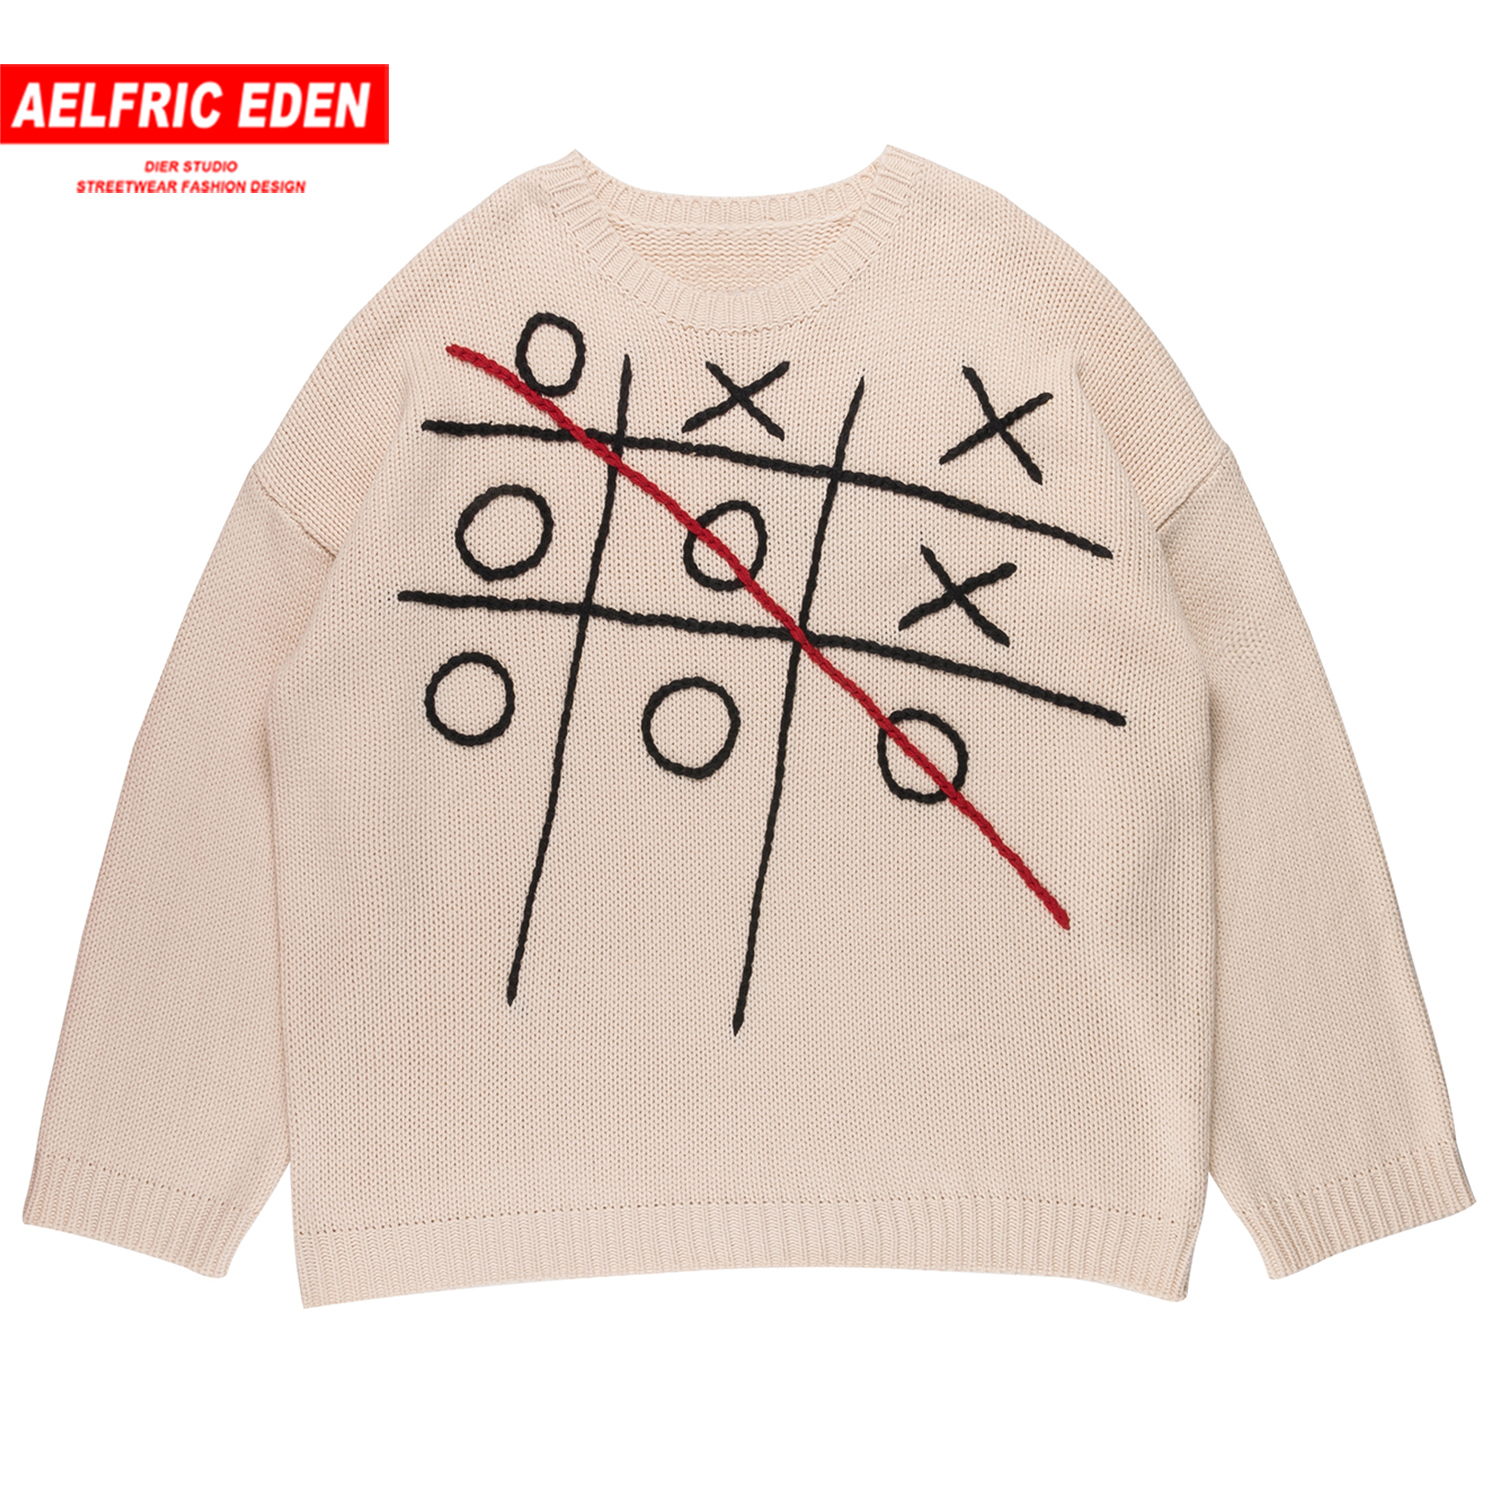 Aelfric Eden Vintage Game Knitted Men Sweater 2019 Autumn Winter Harajuku Tops Hip Hop Streetwear Casual Oversized Male Pullover